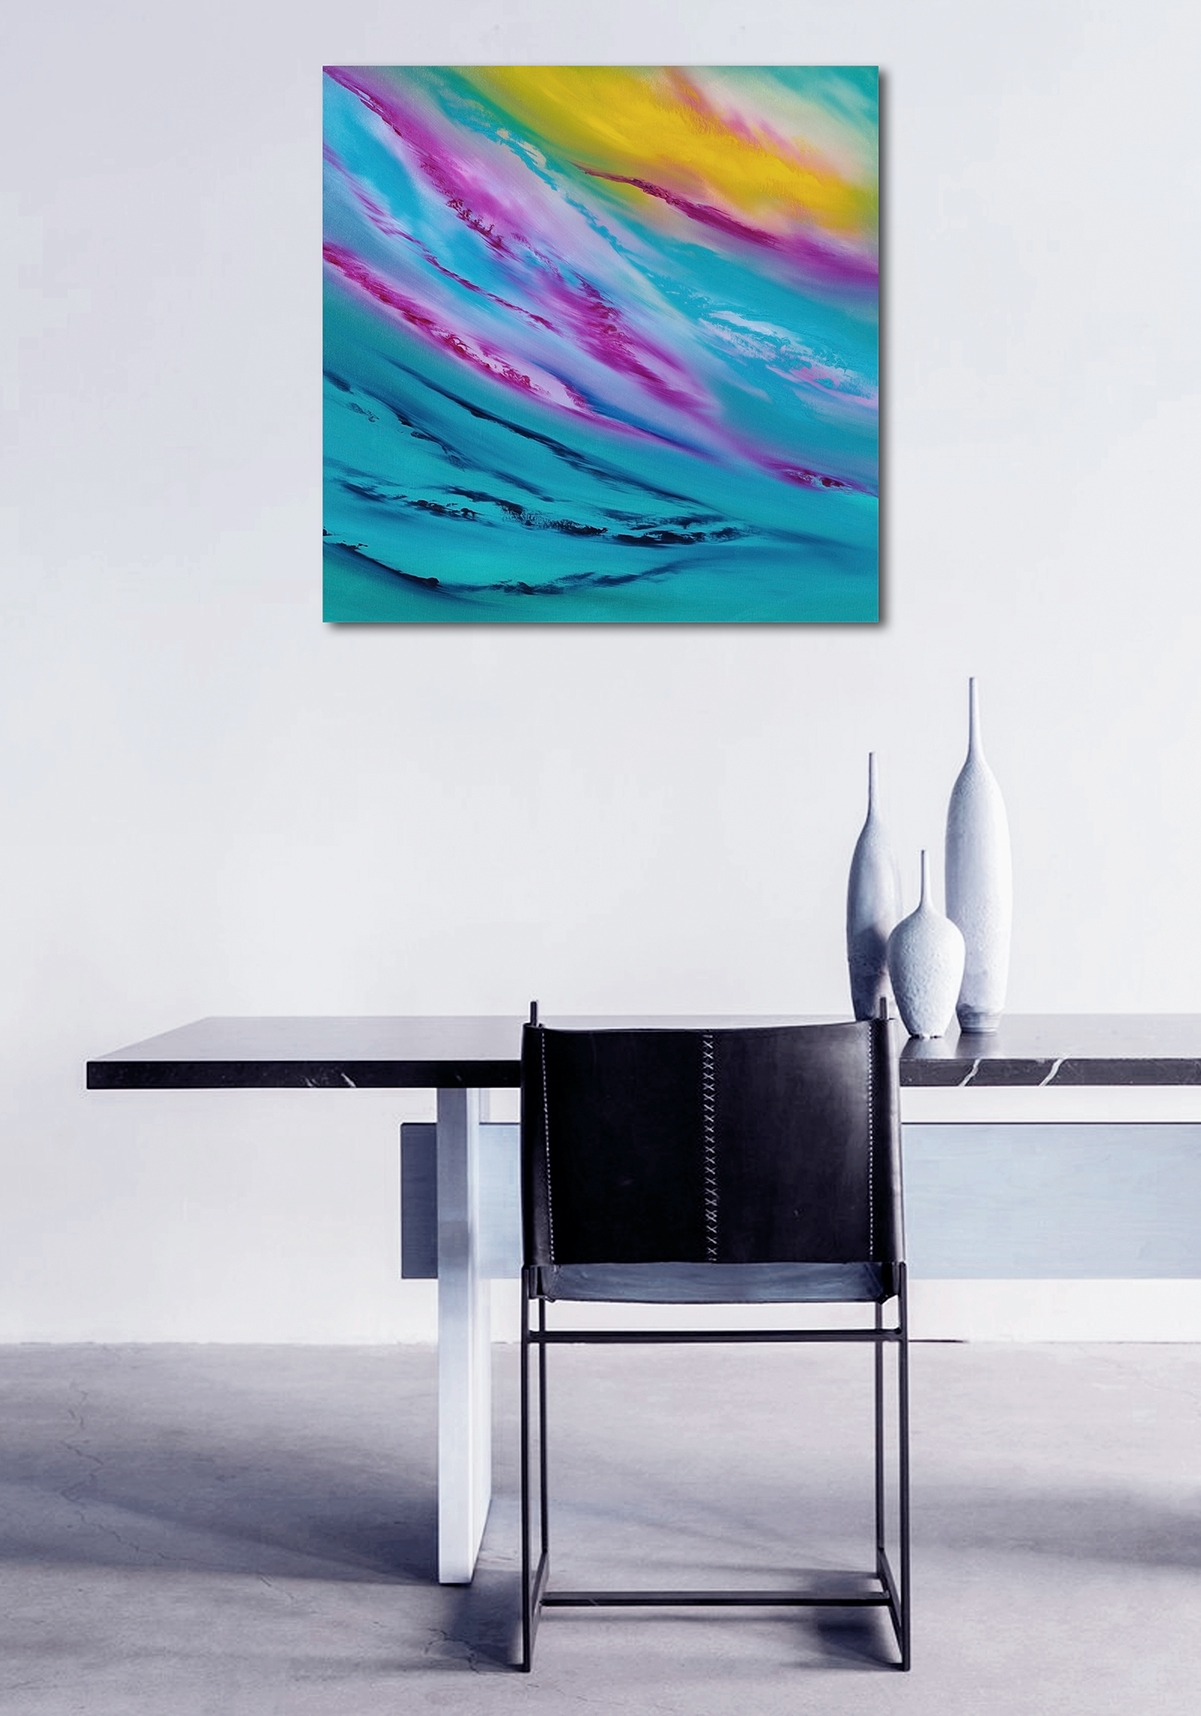 Distracted dream IV 2018 60x60 quadro moderno in vendita online